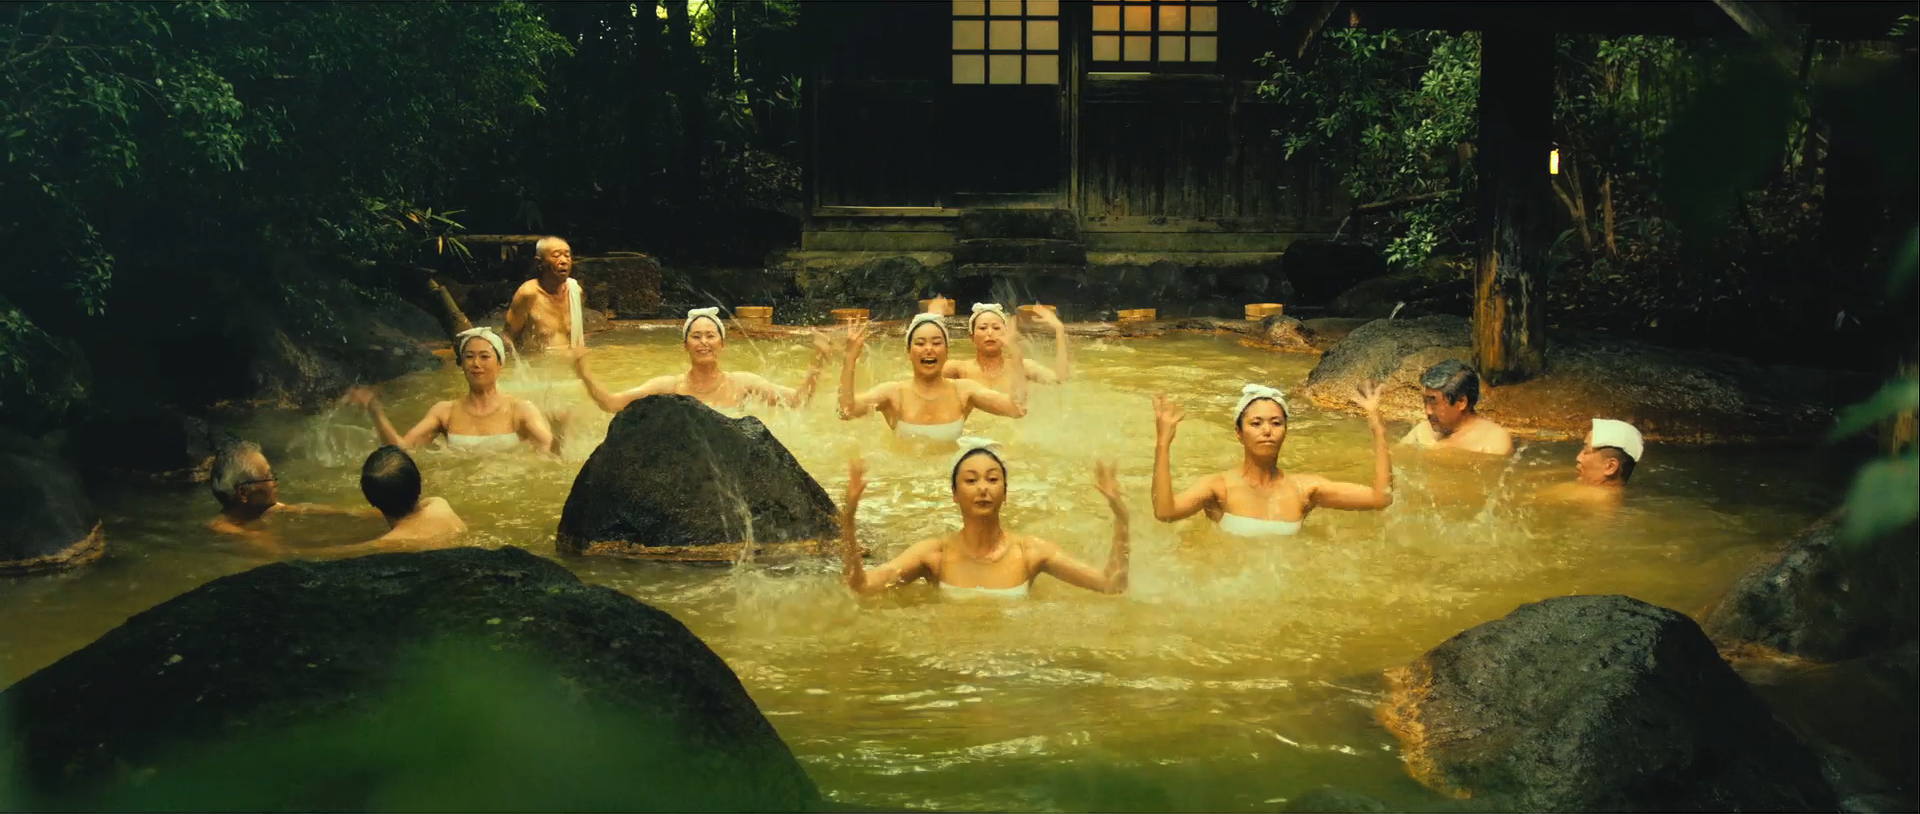 Stills from Onsen ken commercial ©Oitaken